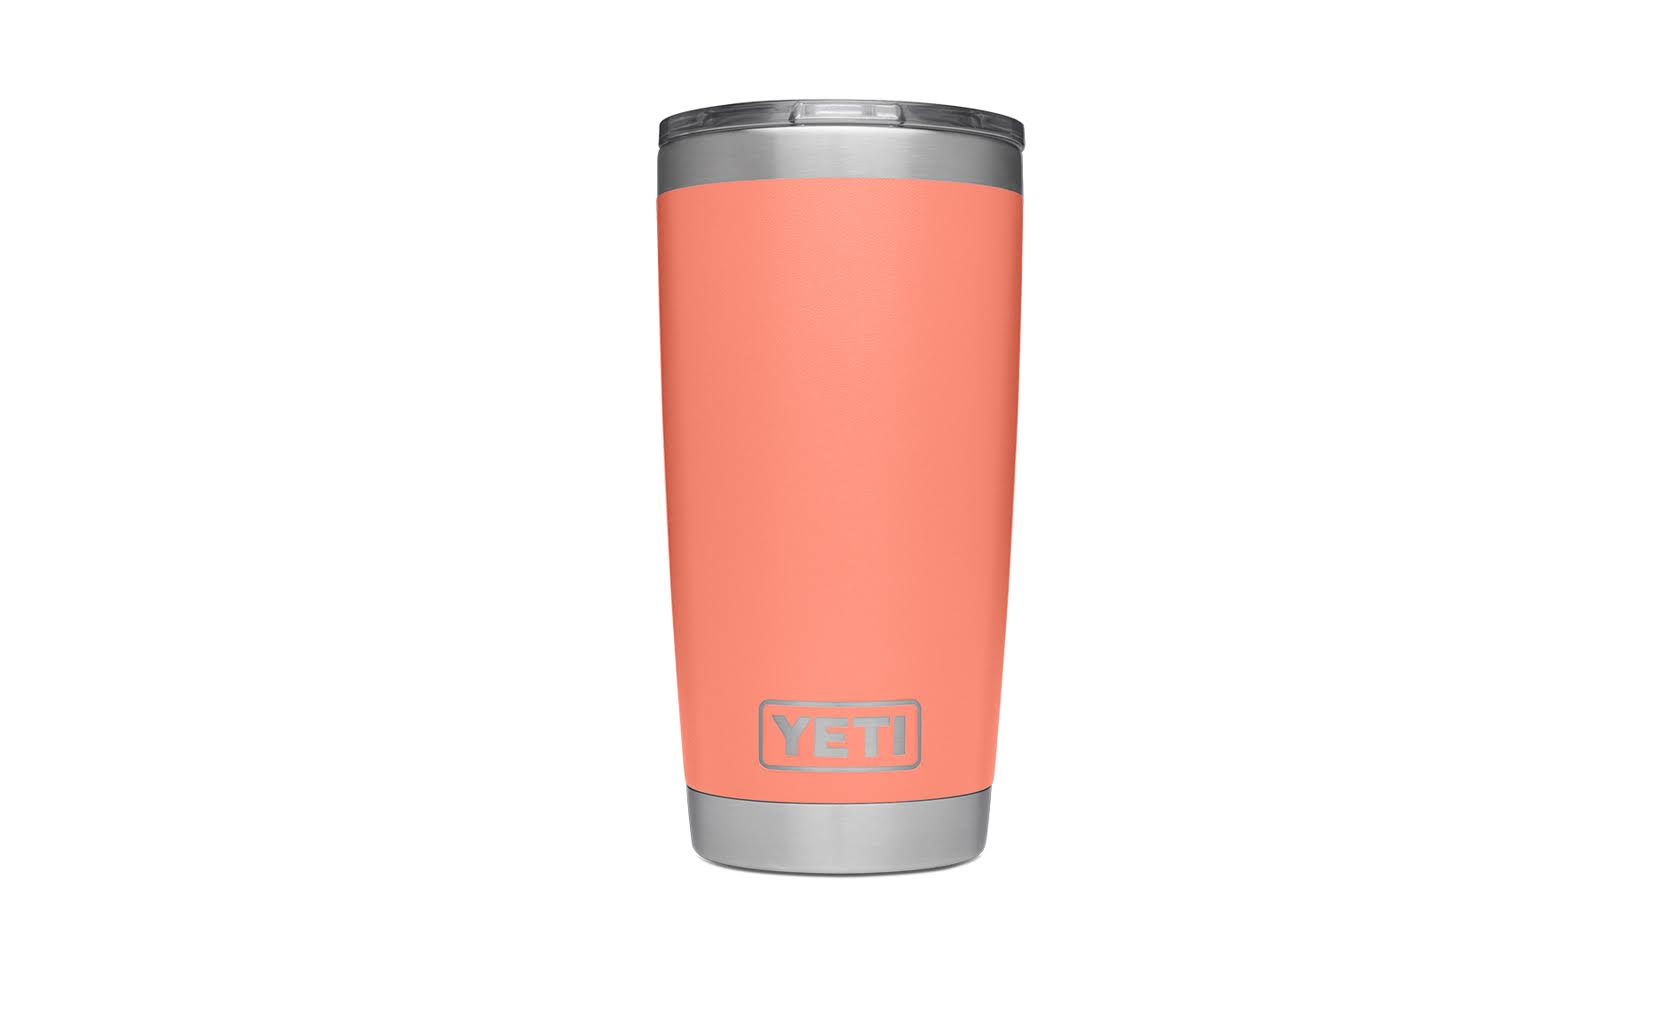 Yeti Rambler Insulated Tumbler - Orange, 20oz